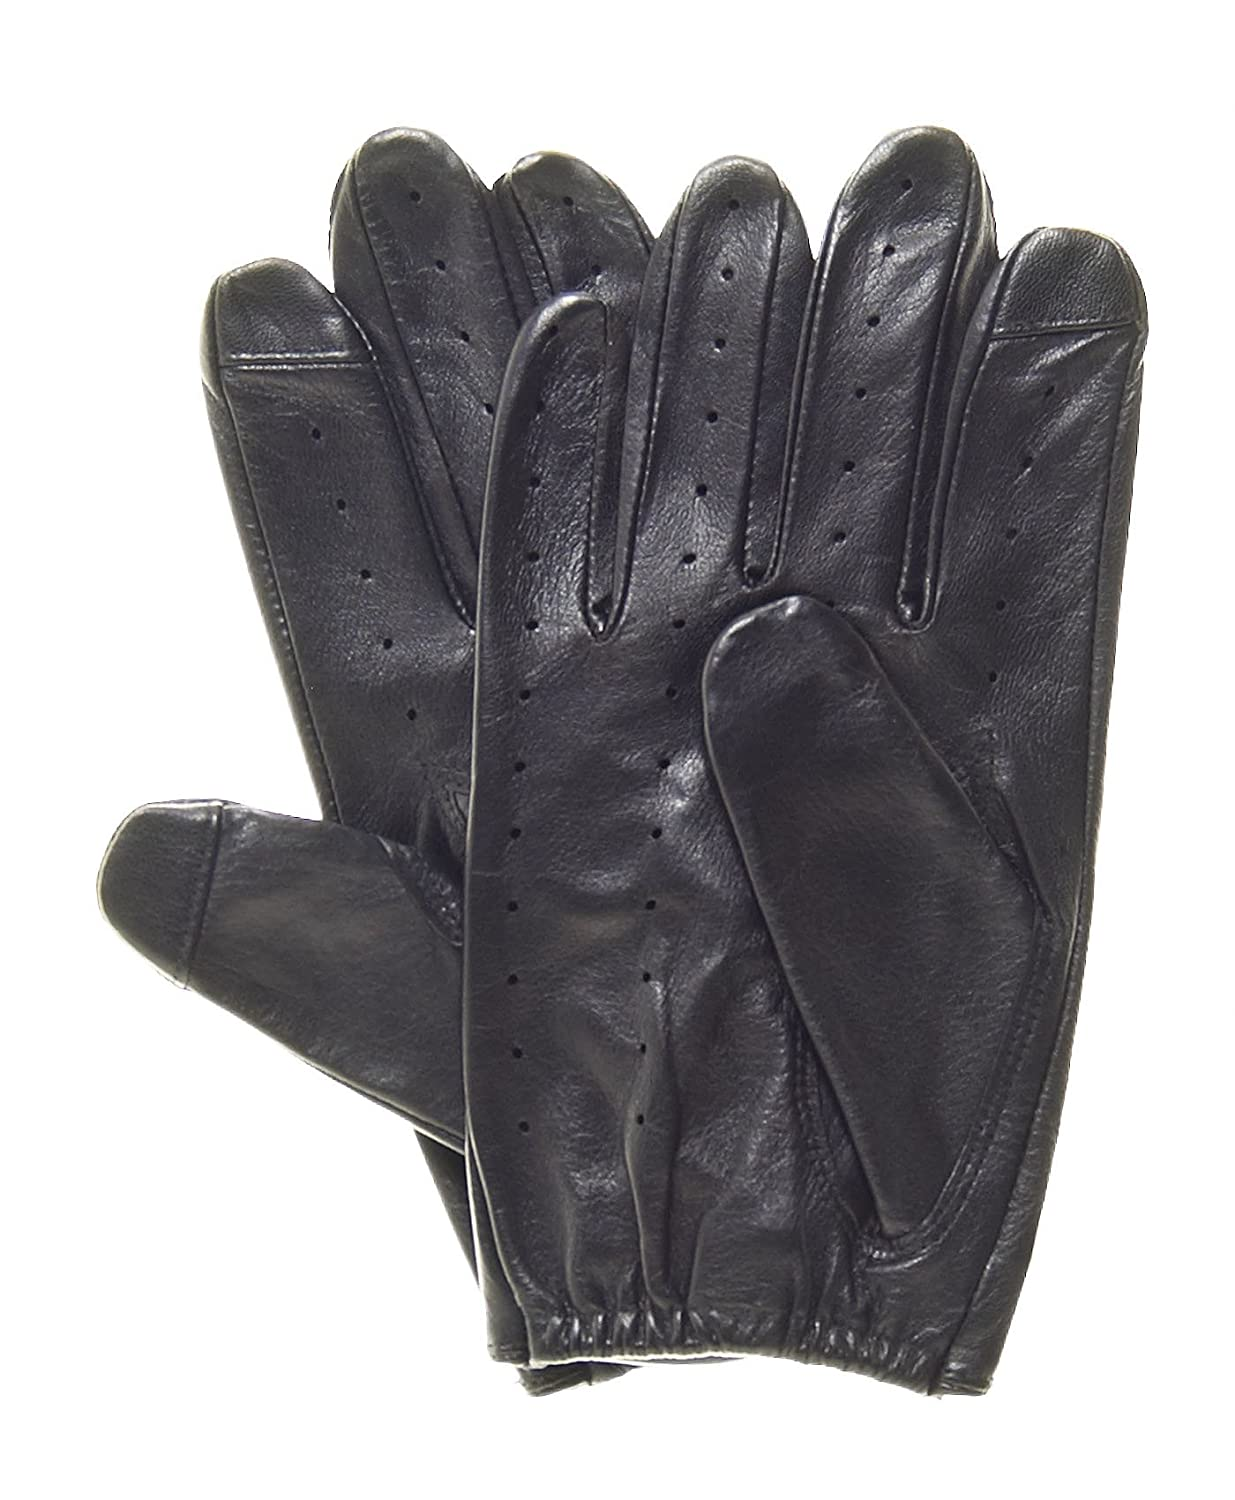 Quality leather driving gloves - Pratt And Hart Touchscreen Leather Driving Gloves Size S Color Black At Amazon Men S Clothing Store